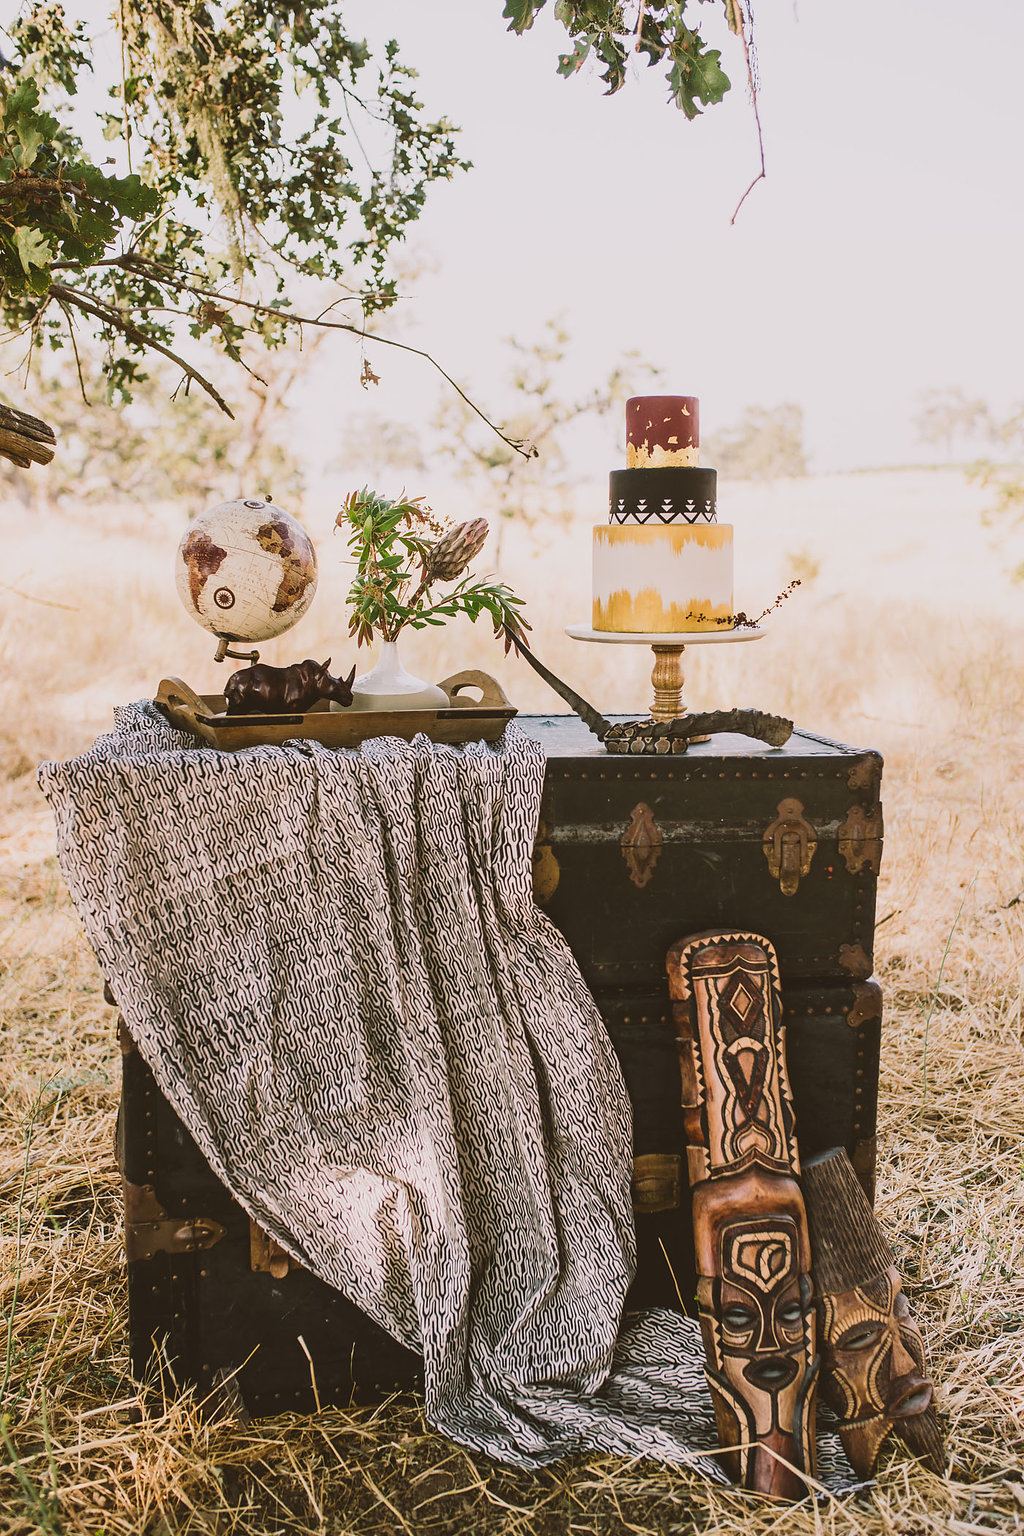 wedding cake tables - photo by Michelle Roller http://ruffledblog.com/wild-safari-inspiration-shoot-with-a-jeep